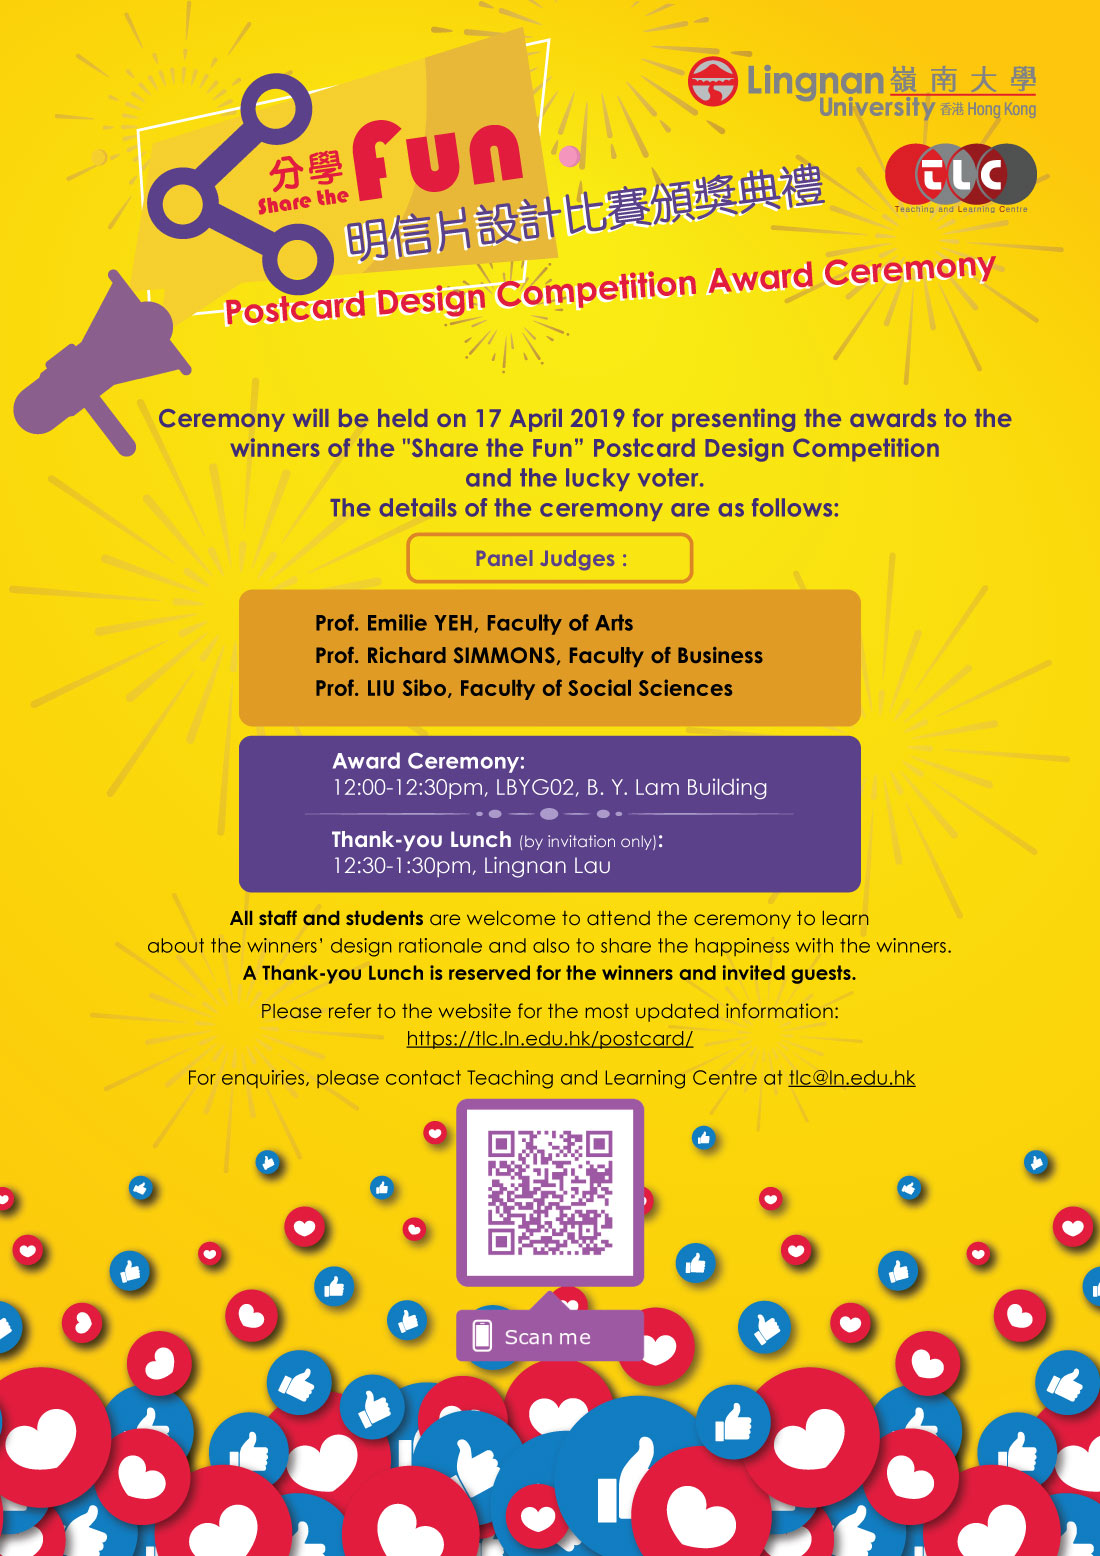 Share the Fun Postcard Design Competition Award Ceremony